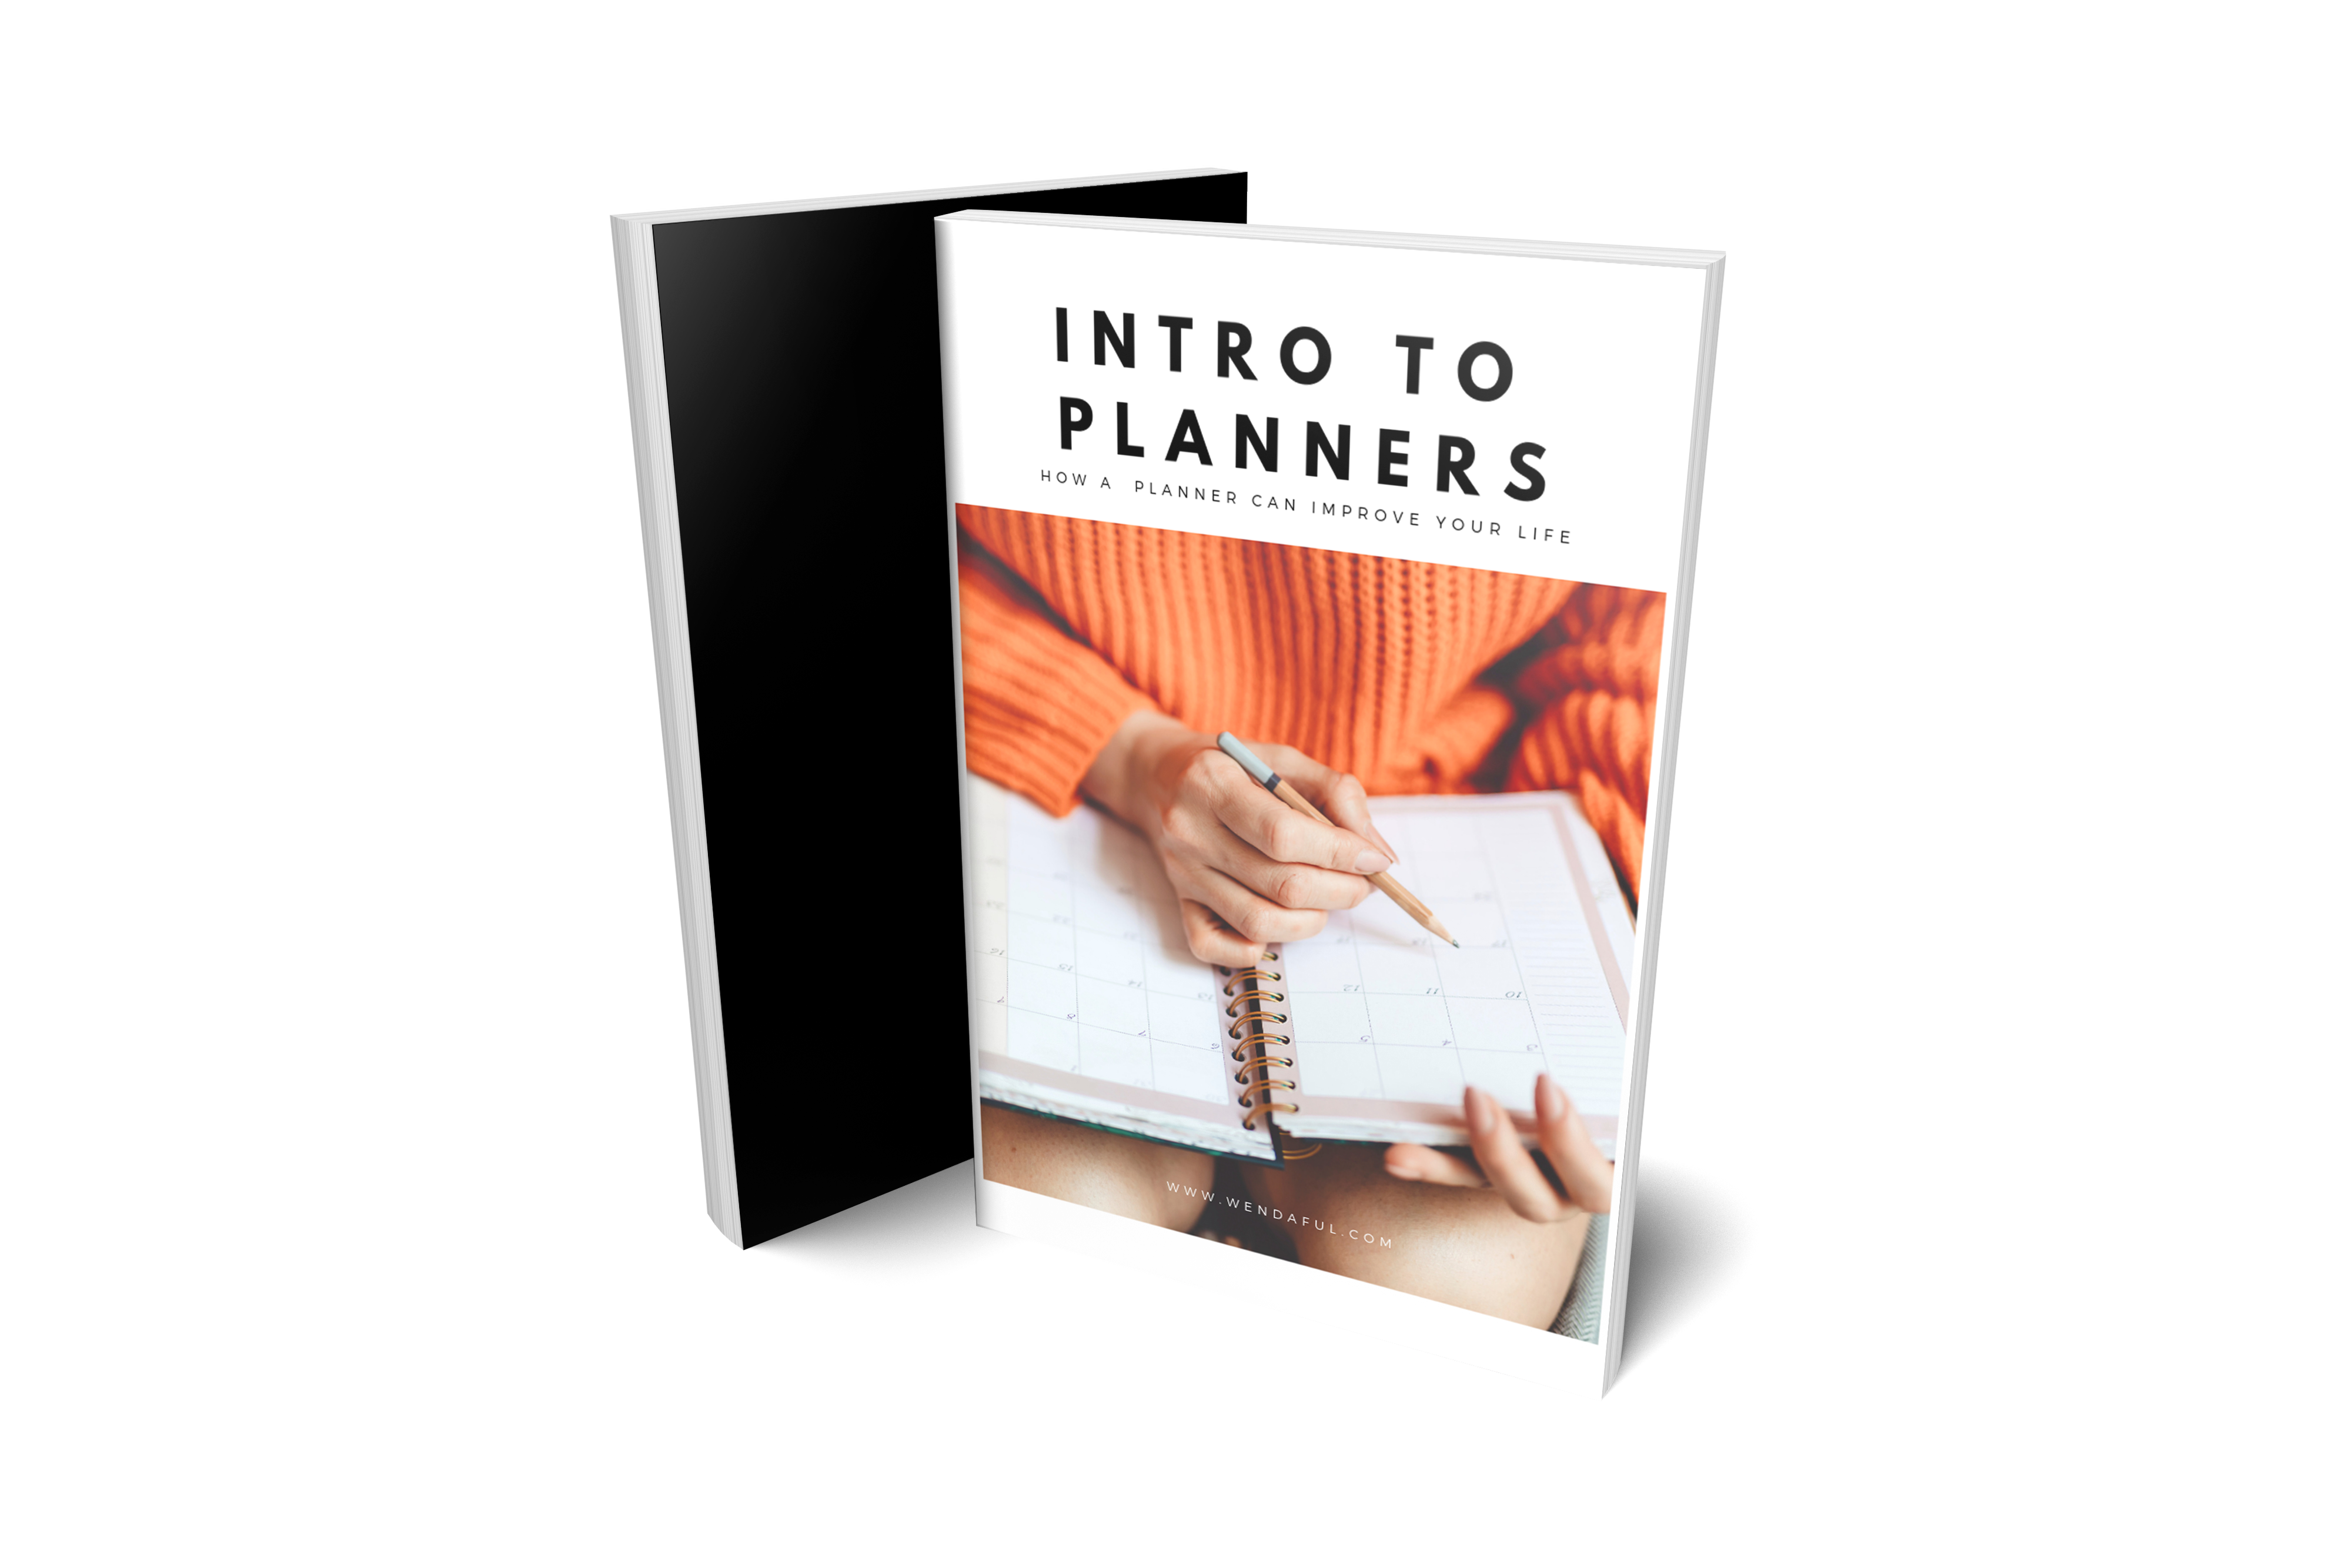 intro to planners